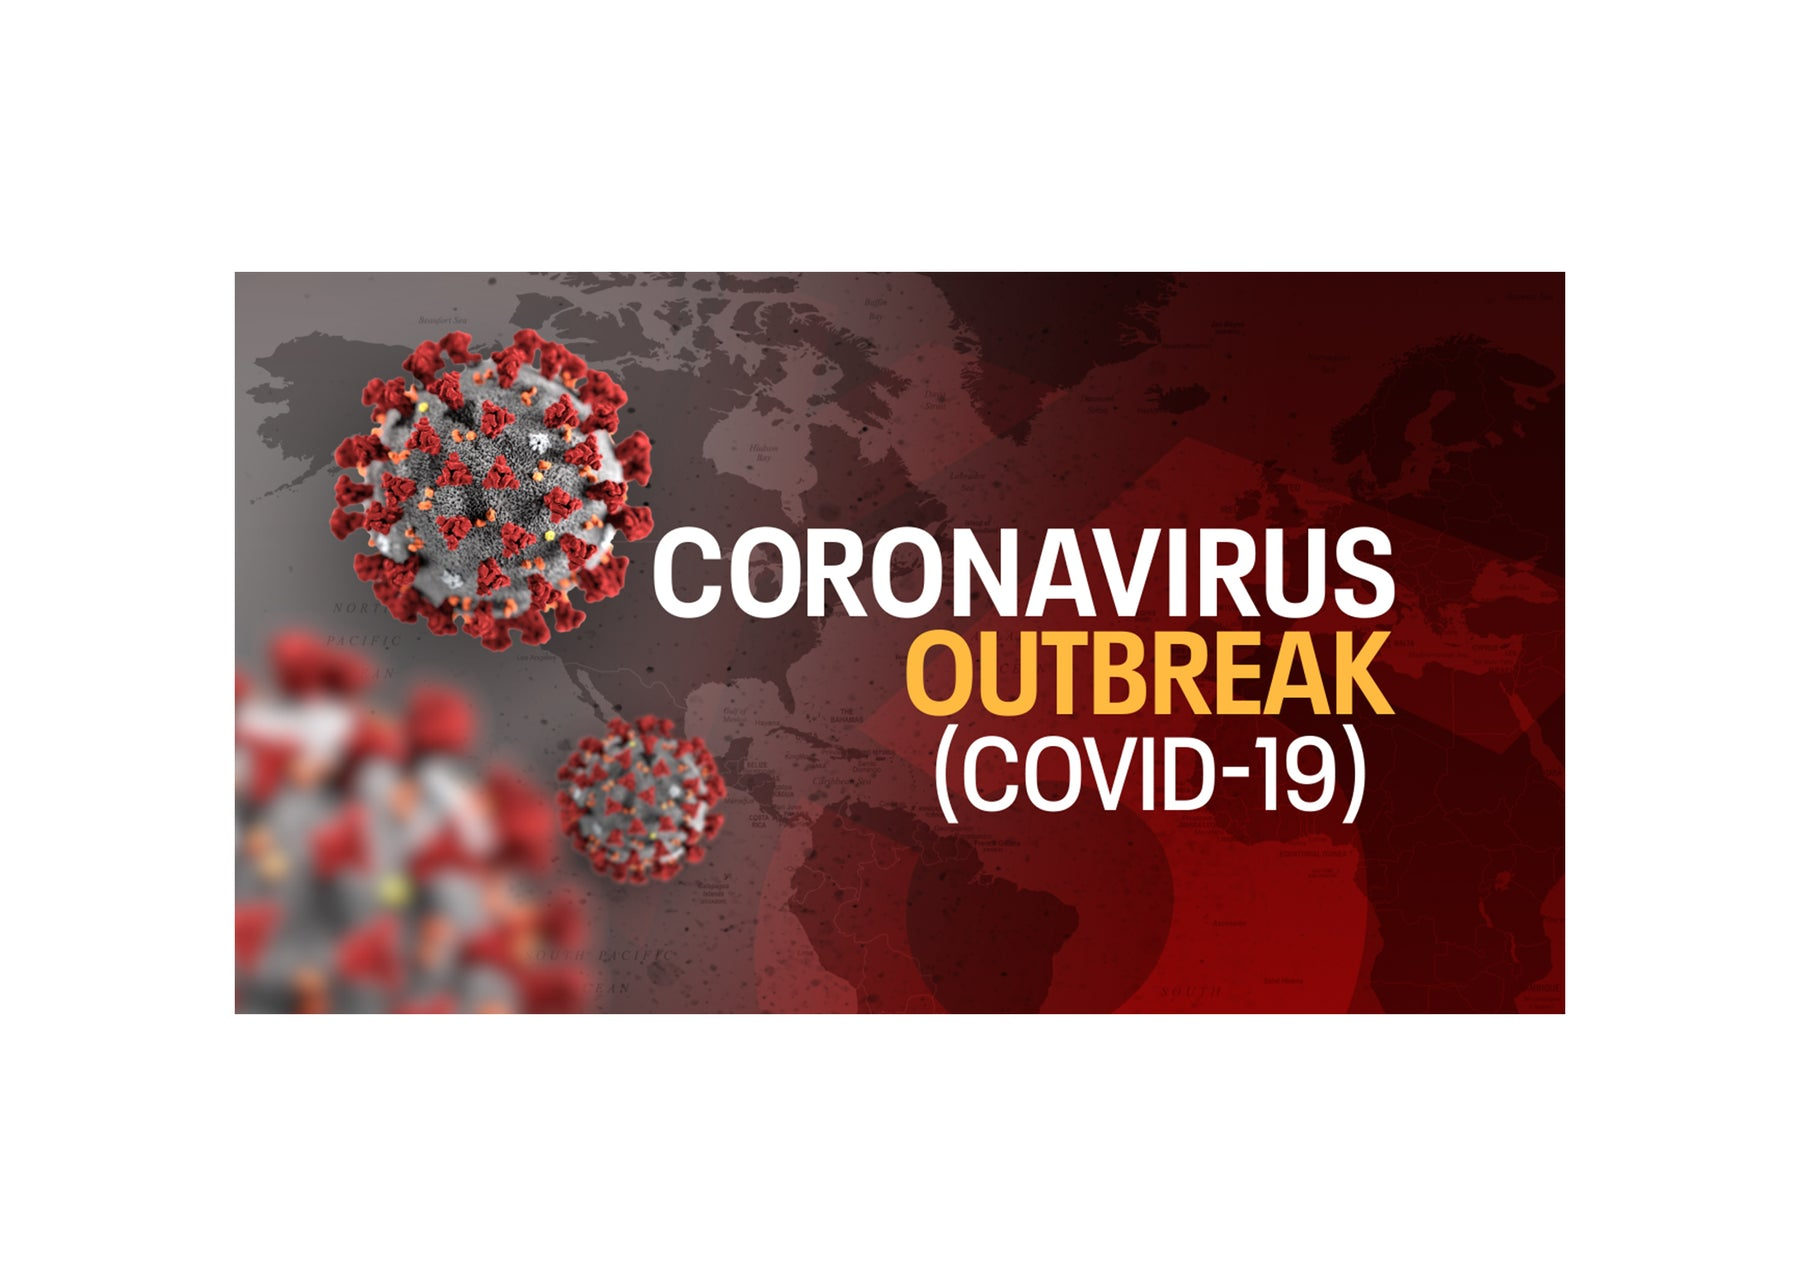 The Coronavirus Outbreak and Workplace Guidelines and Precautions